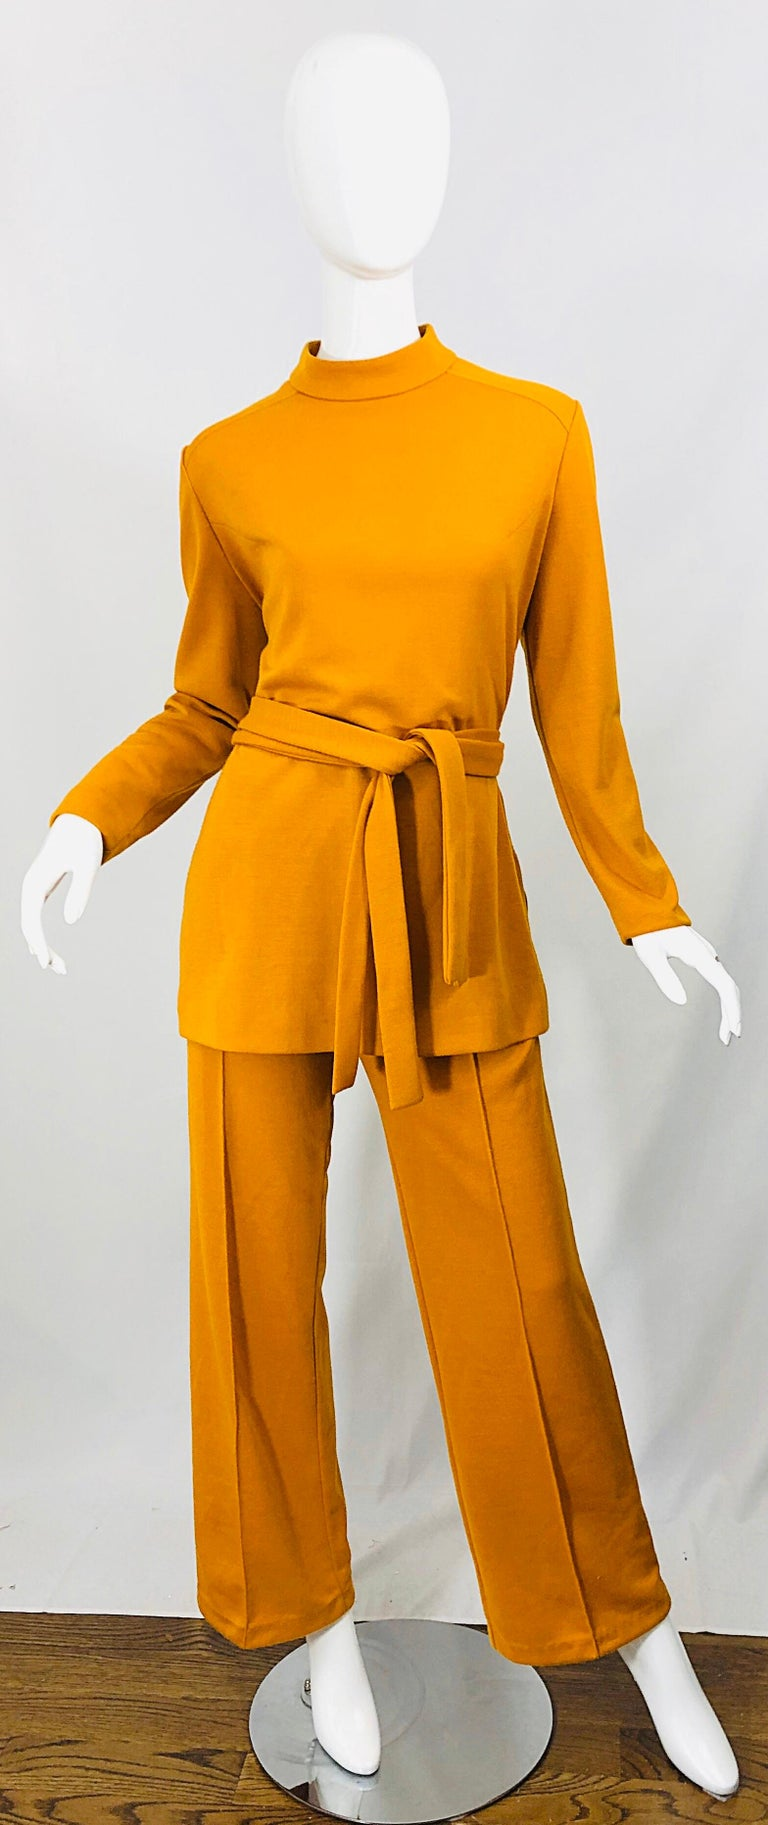 1970s Marigold Mustard Yellow Four Piece Vintage 70s Knit Shirt + Pants + Belt For Sale 12